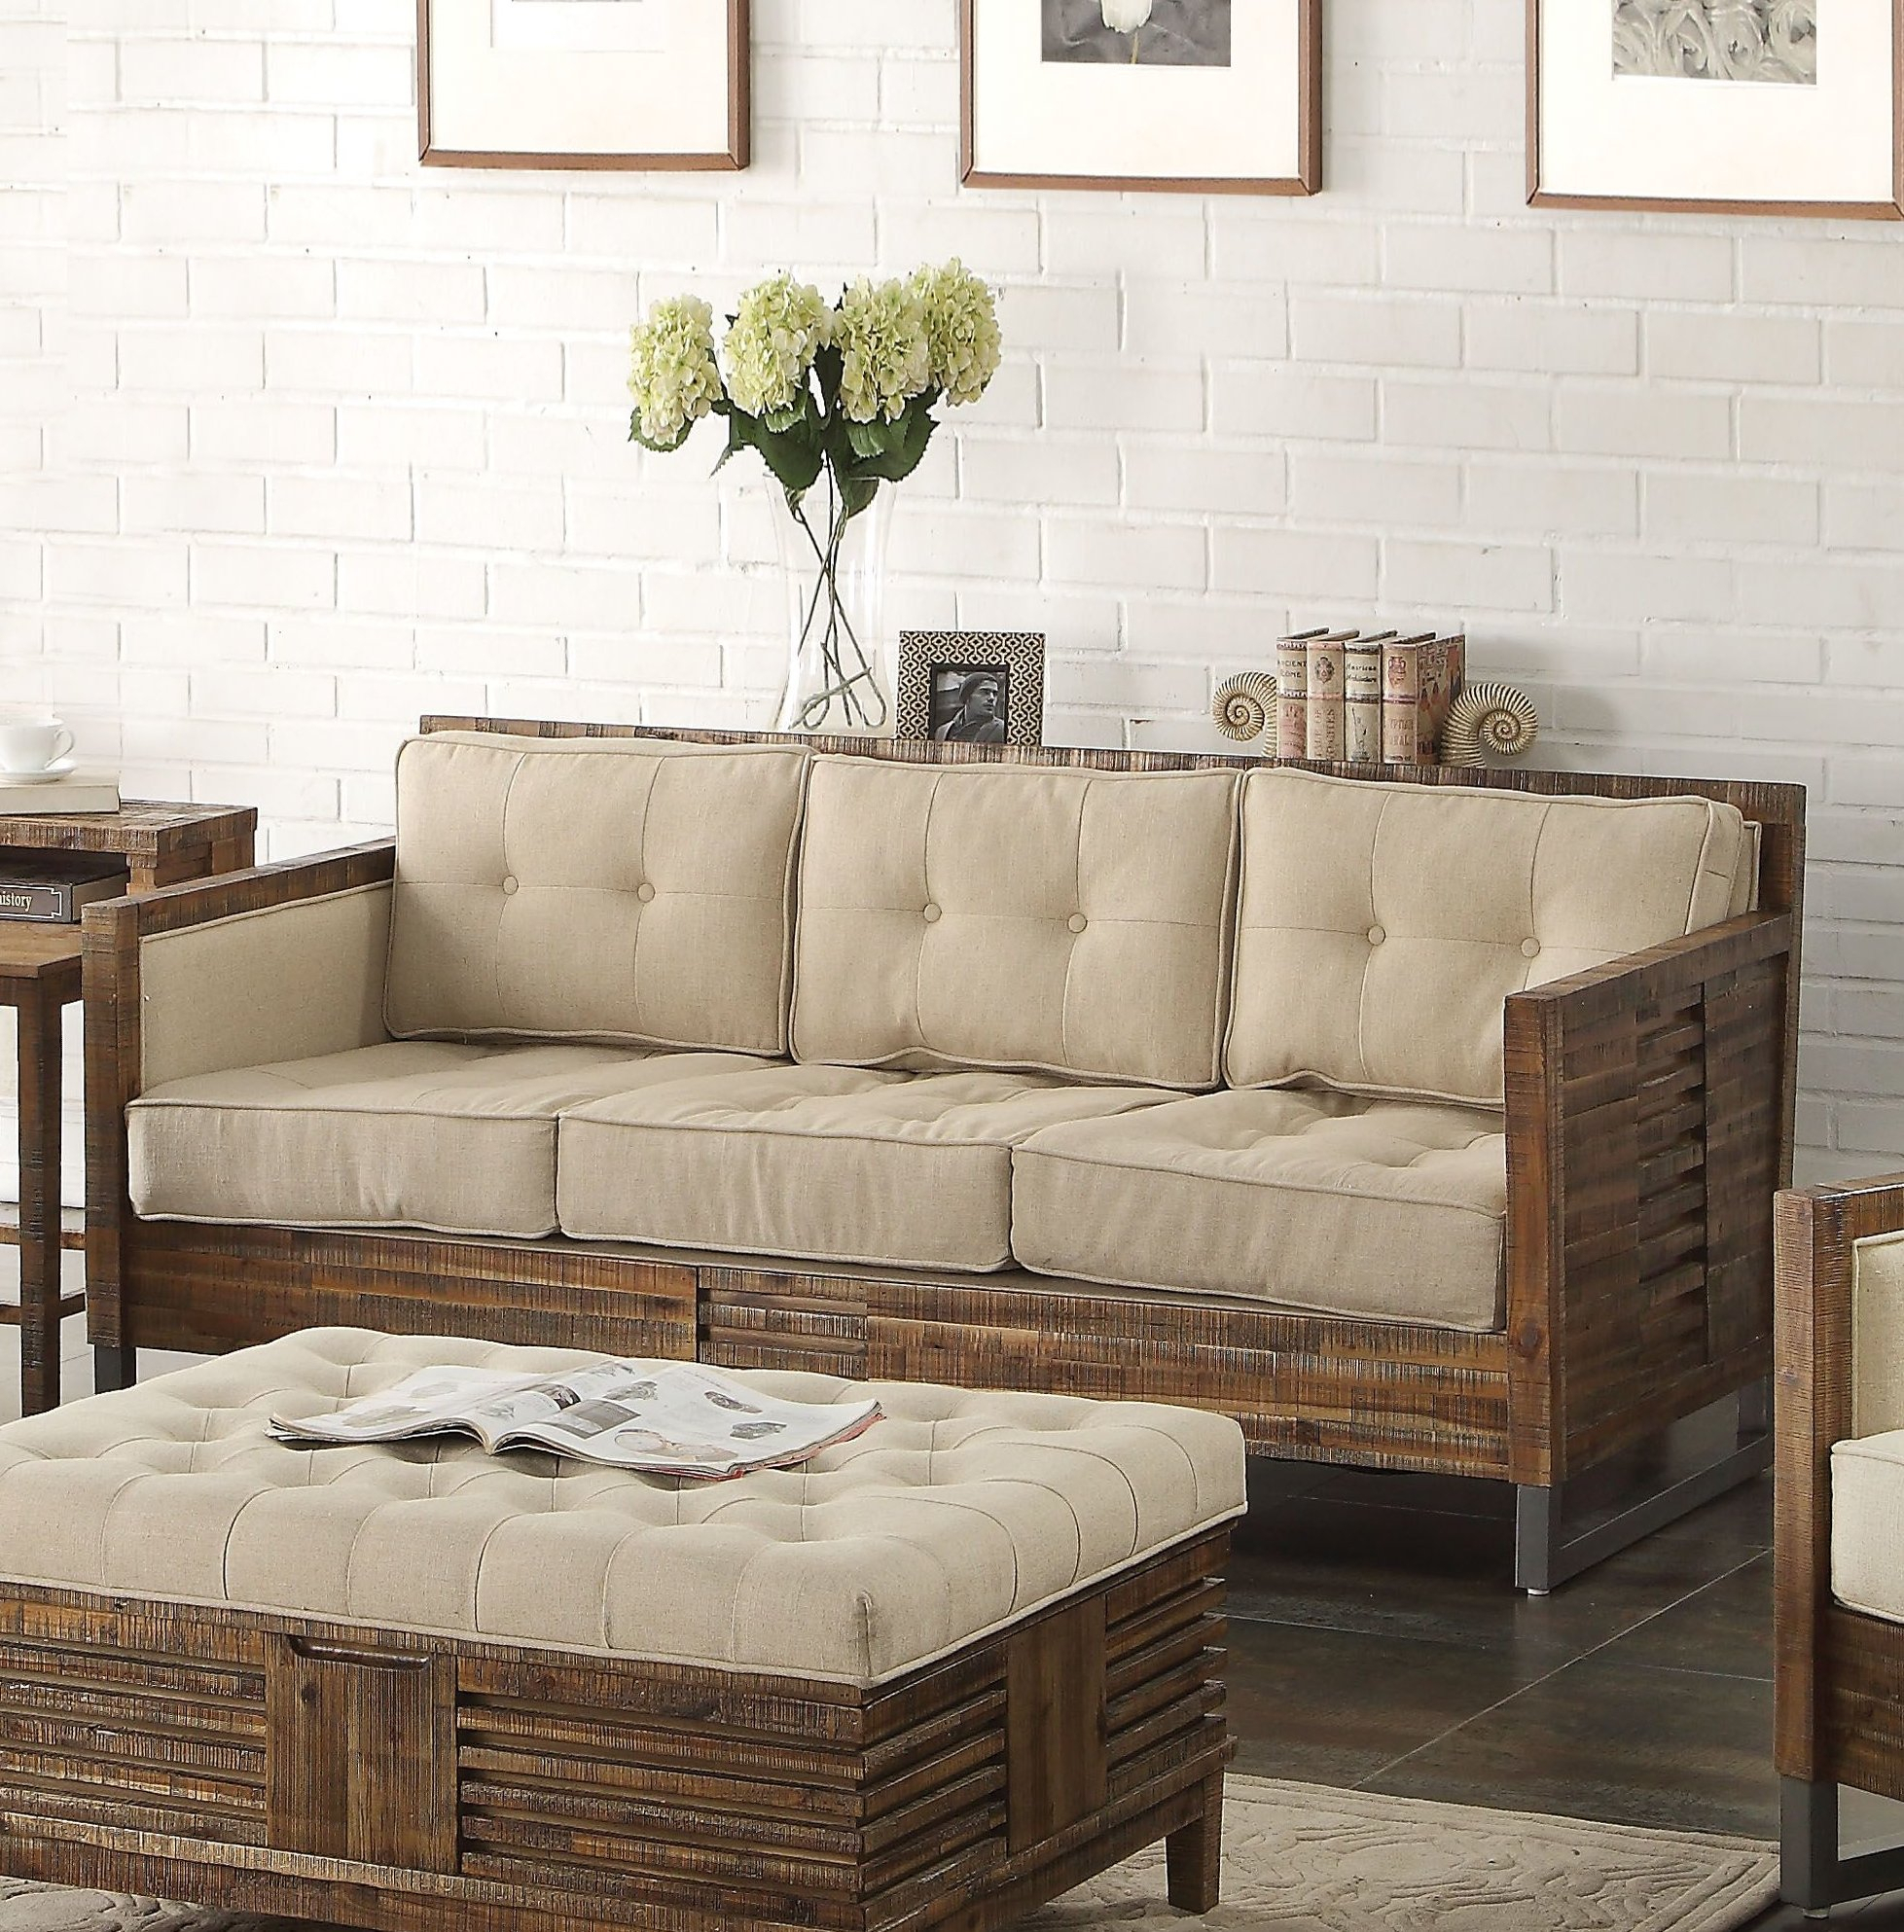 Foundry Select Rory Sofa | Wayfair With Regard To Rory Sofa Chairs (View 5 of 25)